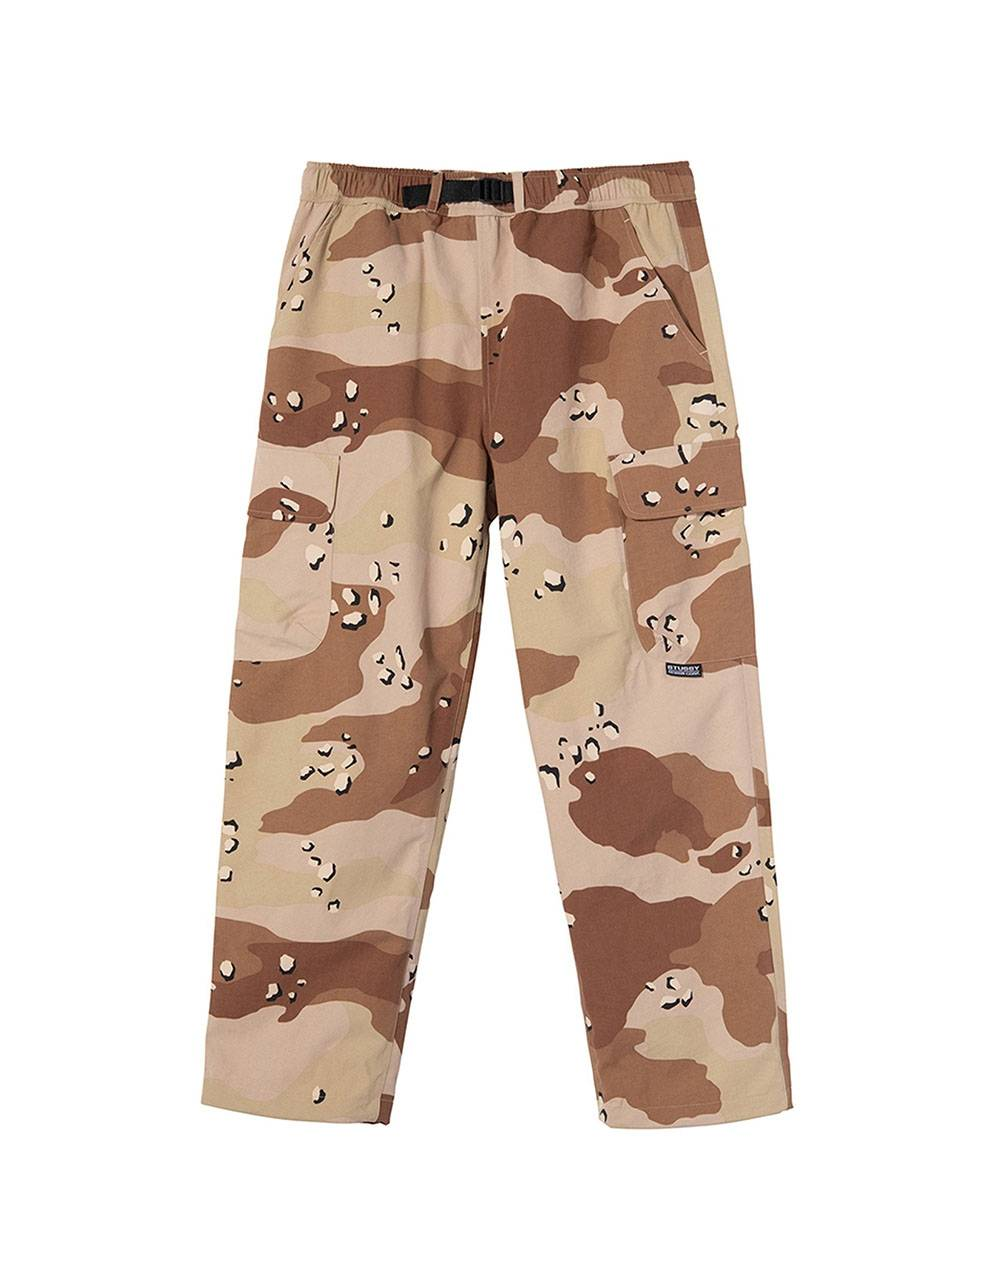 Stussy taped seam cargo pants - camo Stussy Pant 182,00 €